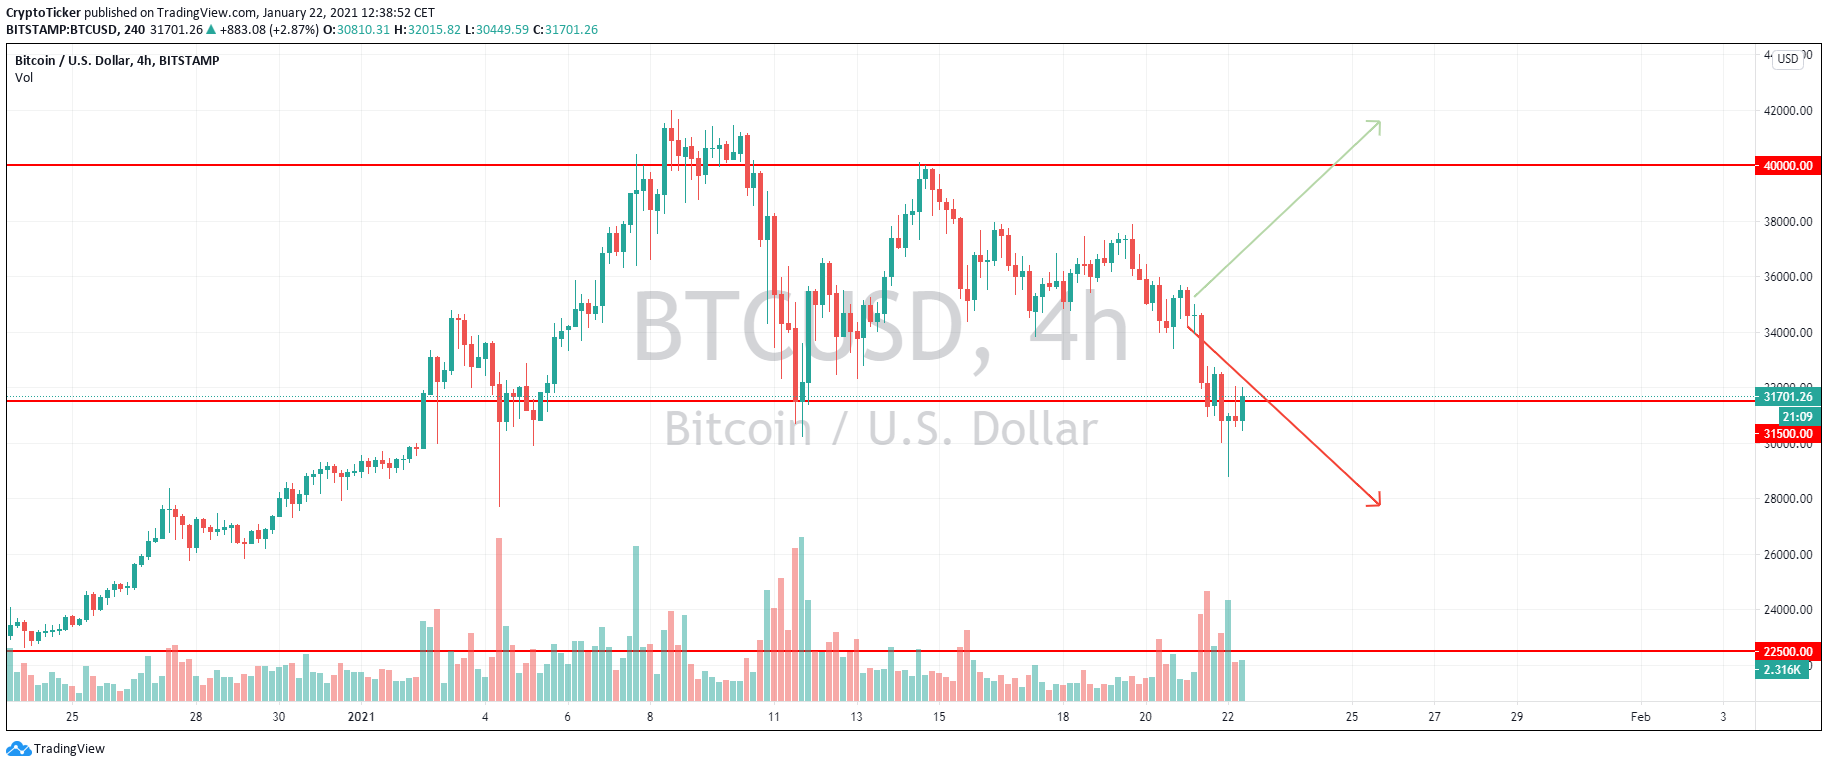 BTC/USD 4-hour chart showing a lower price following the Bitcoin double spend news